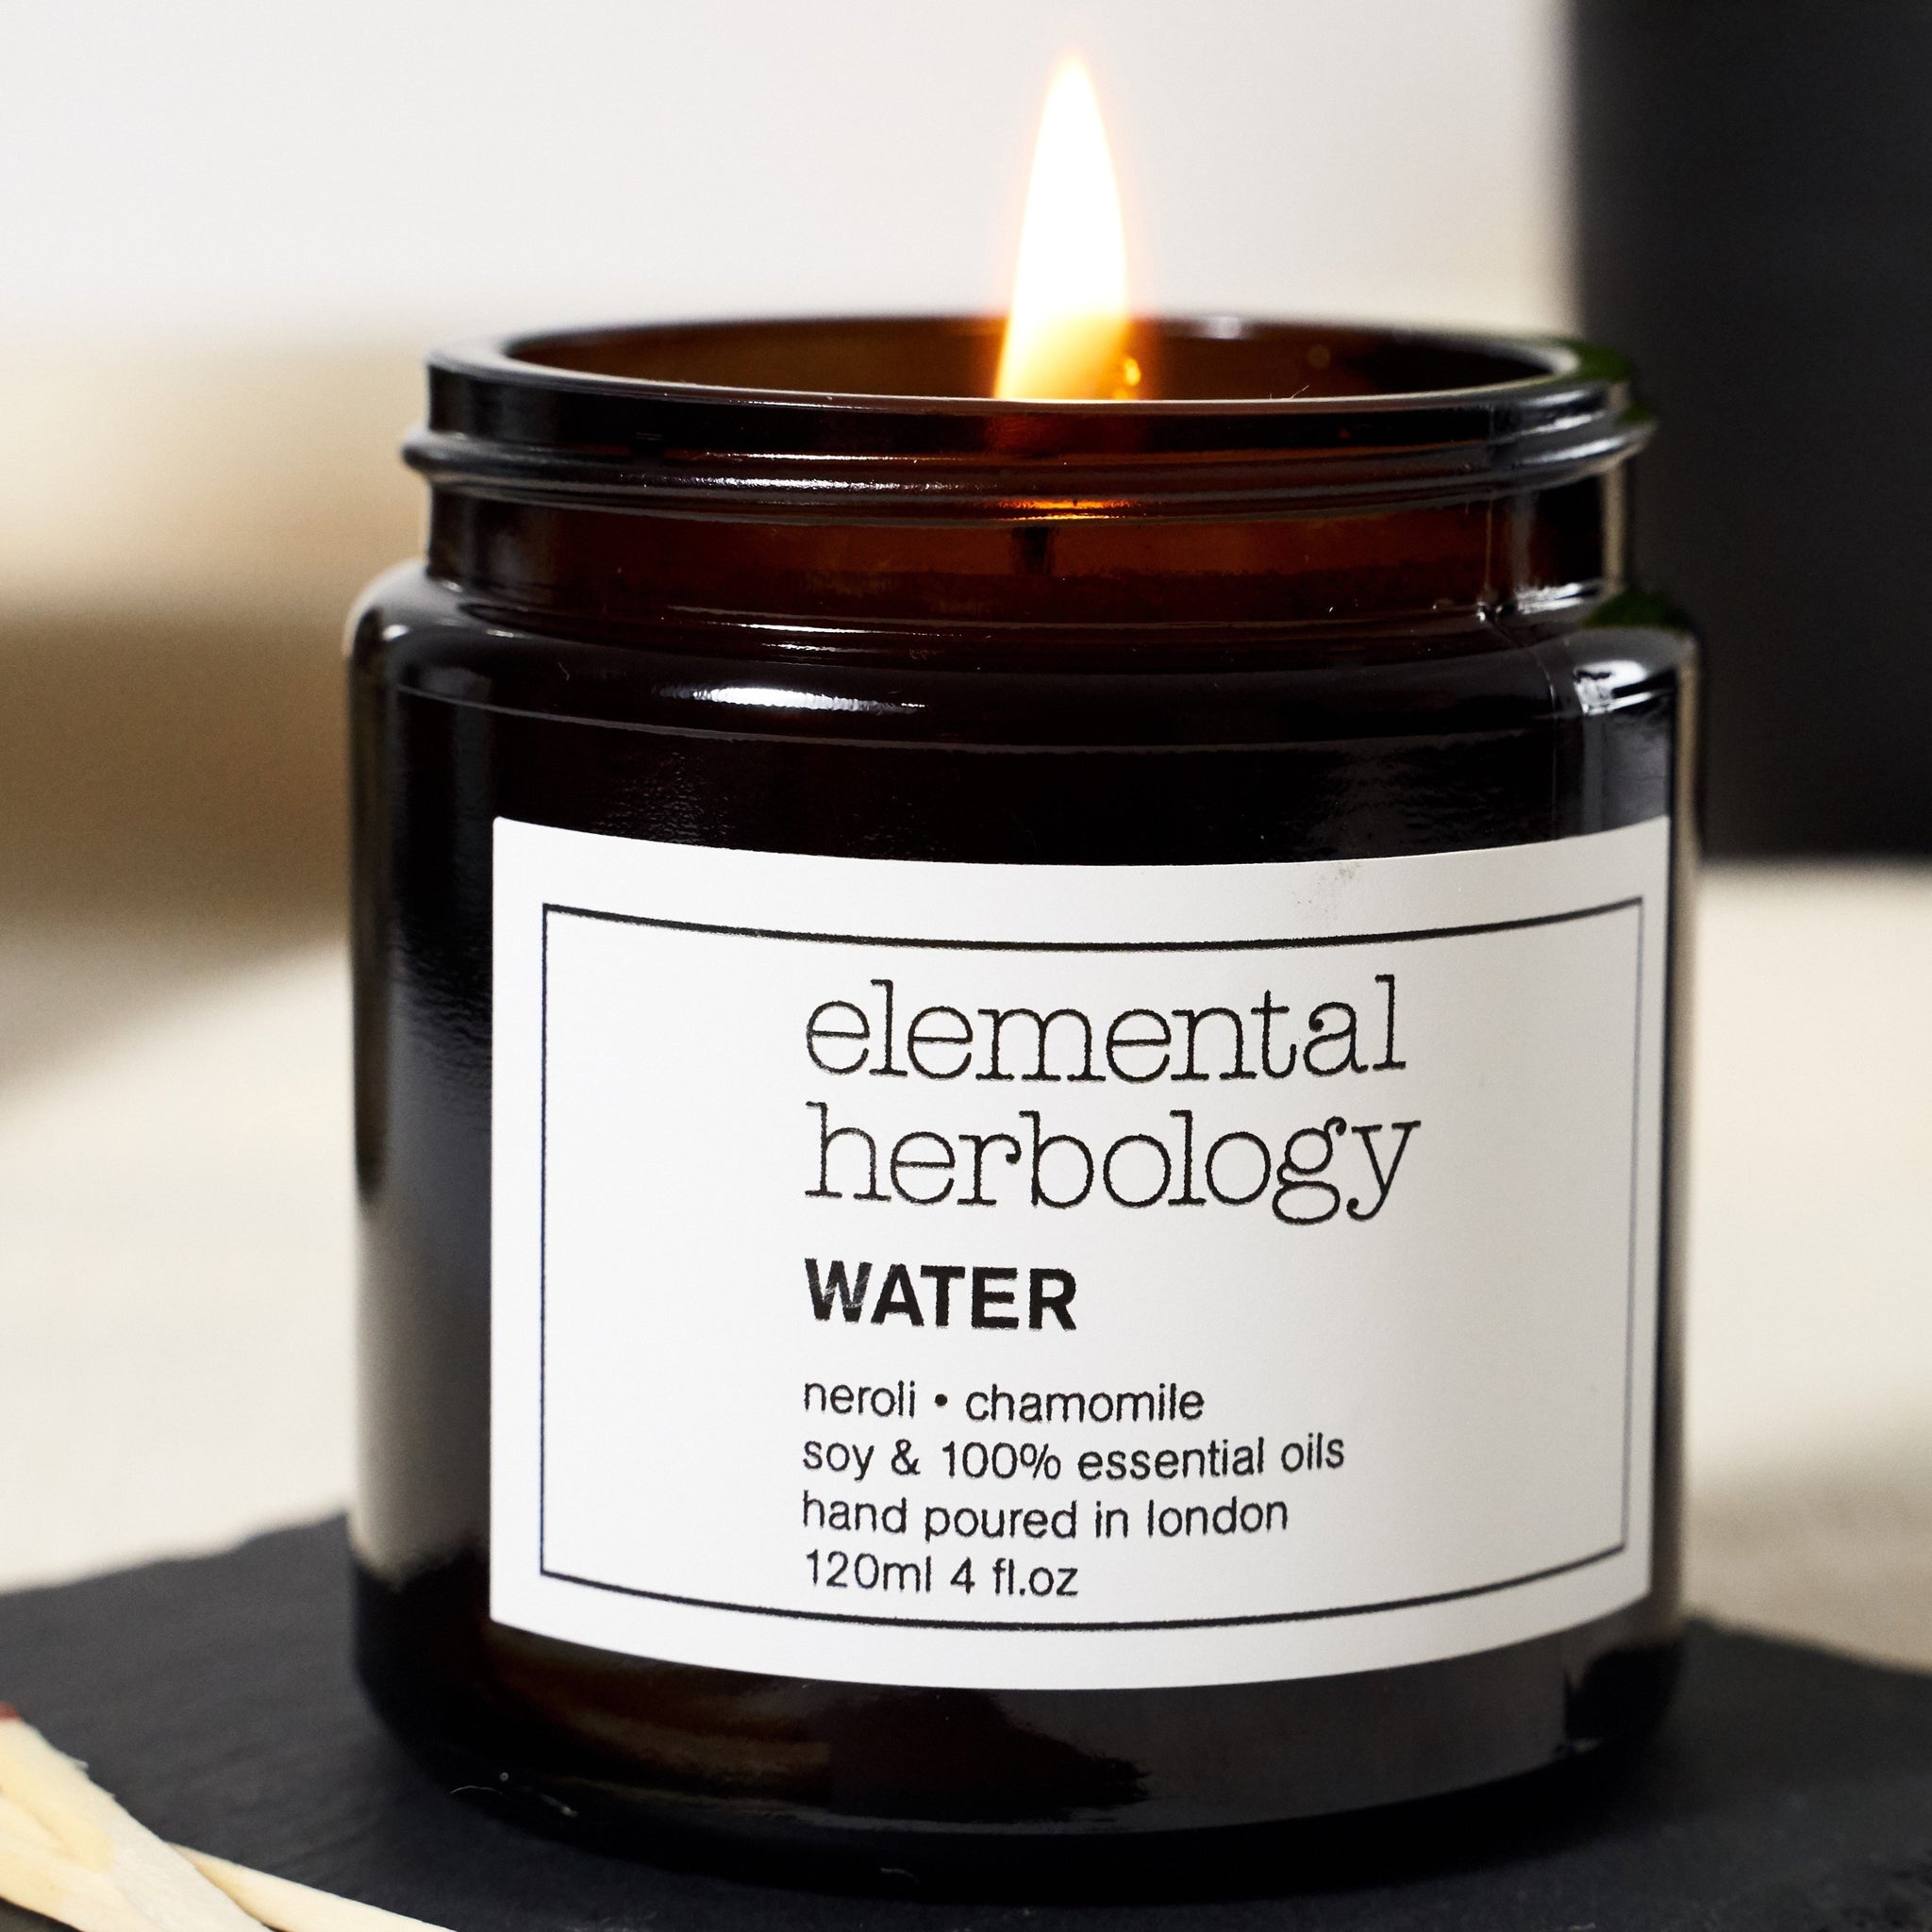 Water Soothe Aromatherapy Soy Wax Candle, Elemental Herbology